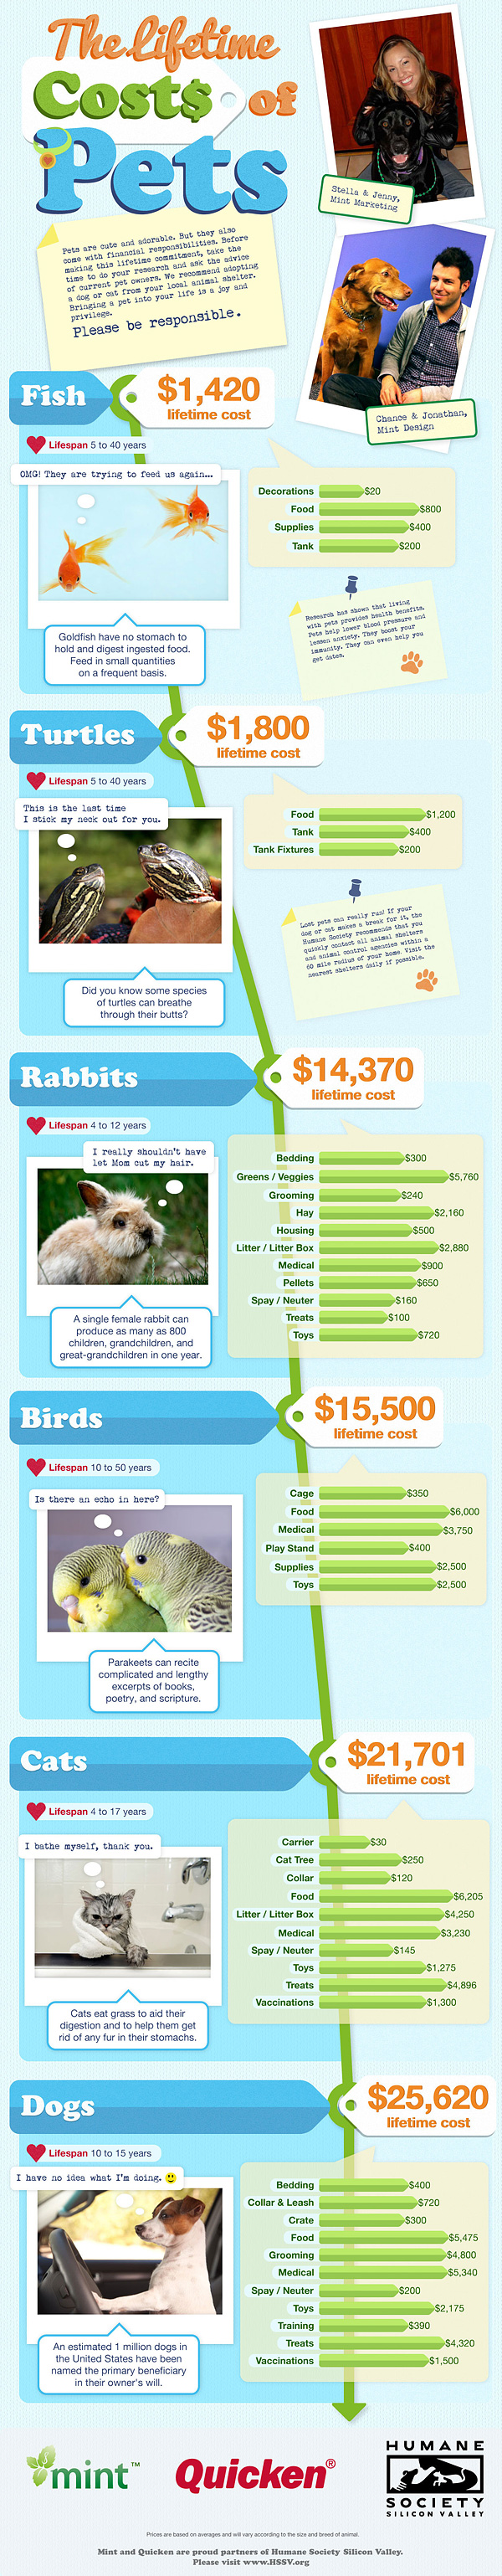 Lifetime Costs of Pet Ownership Infographic